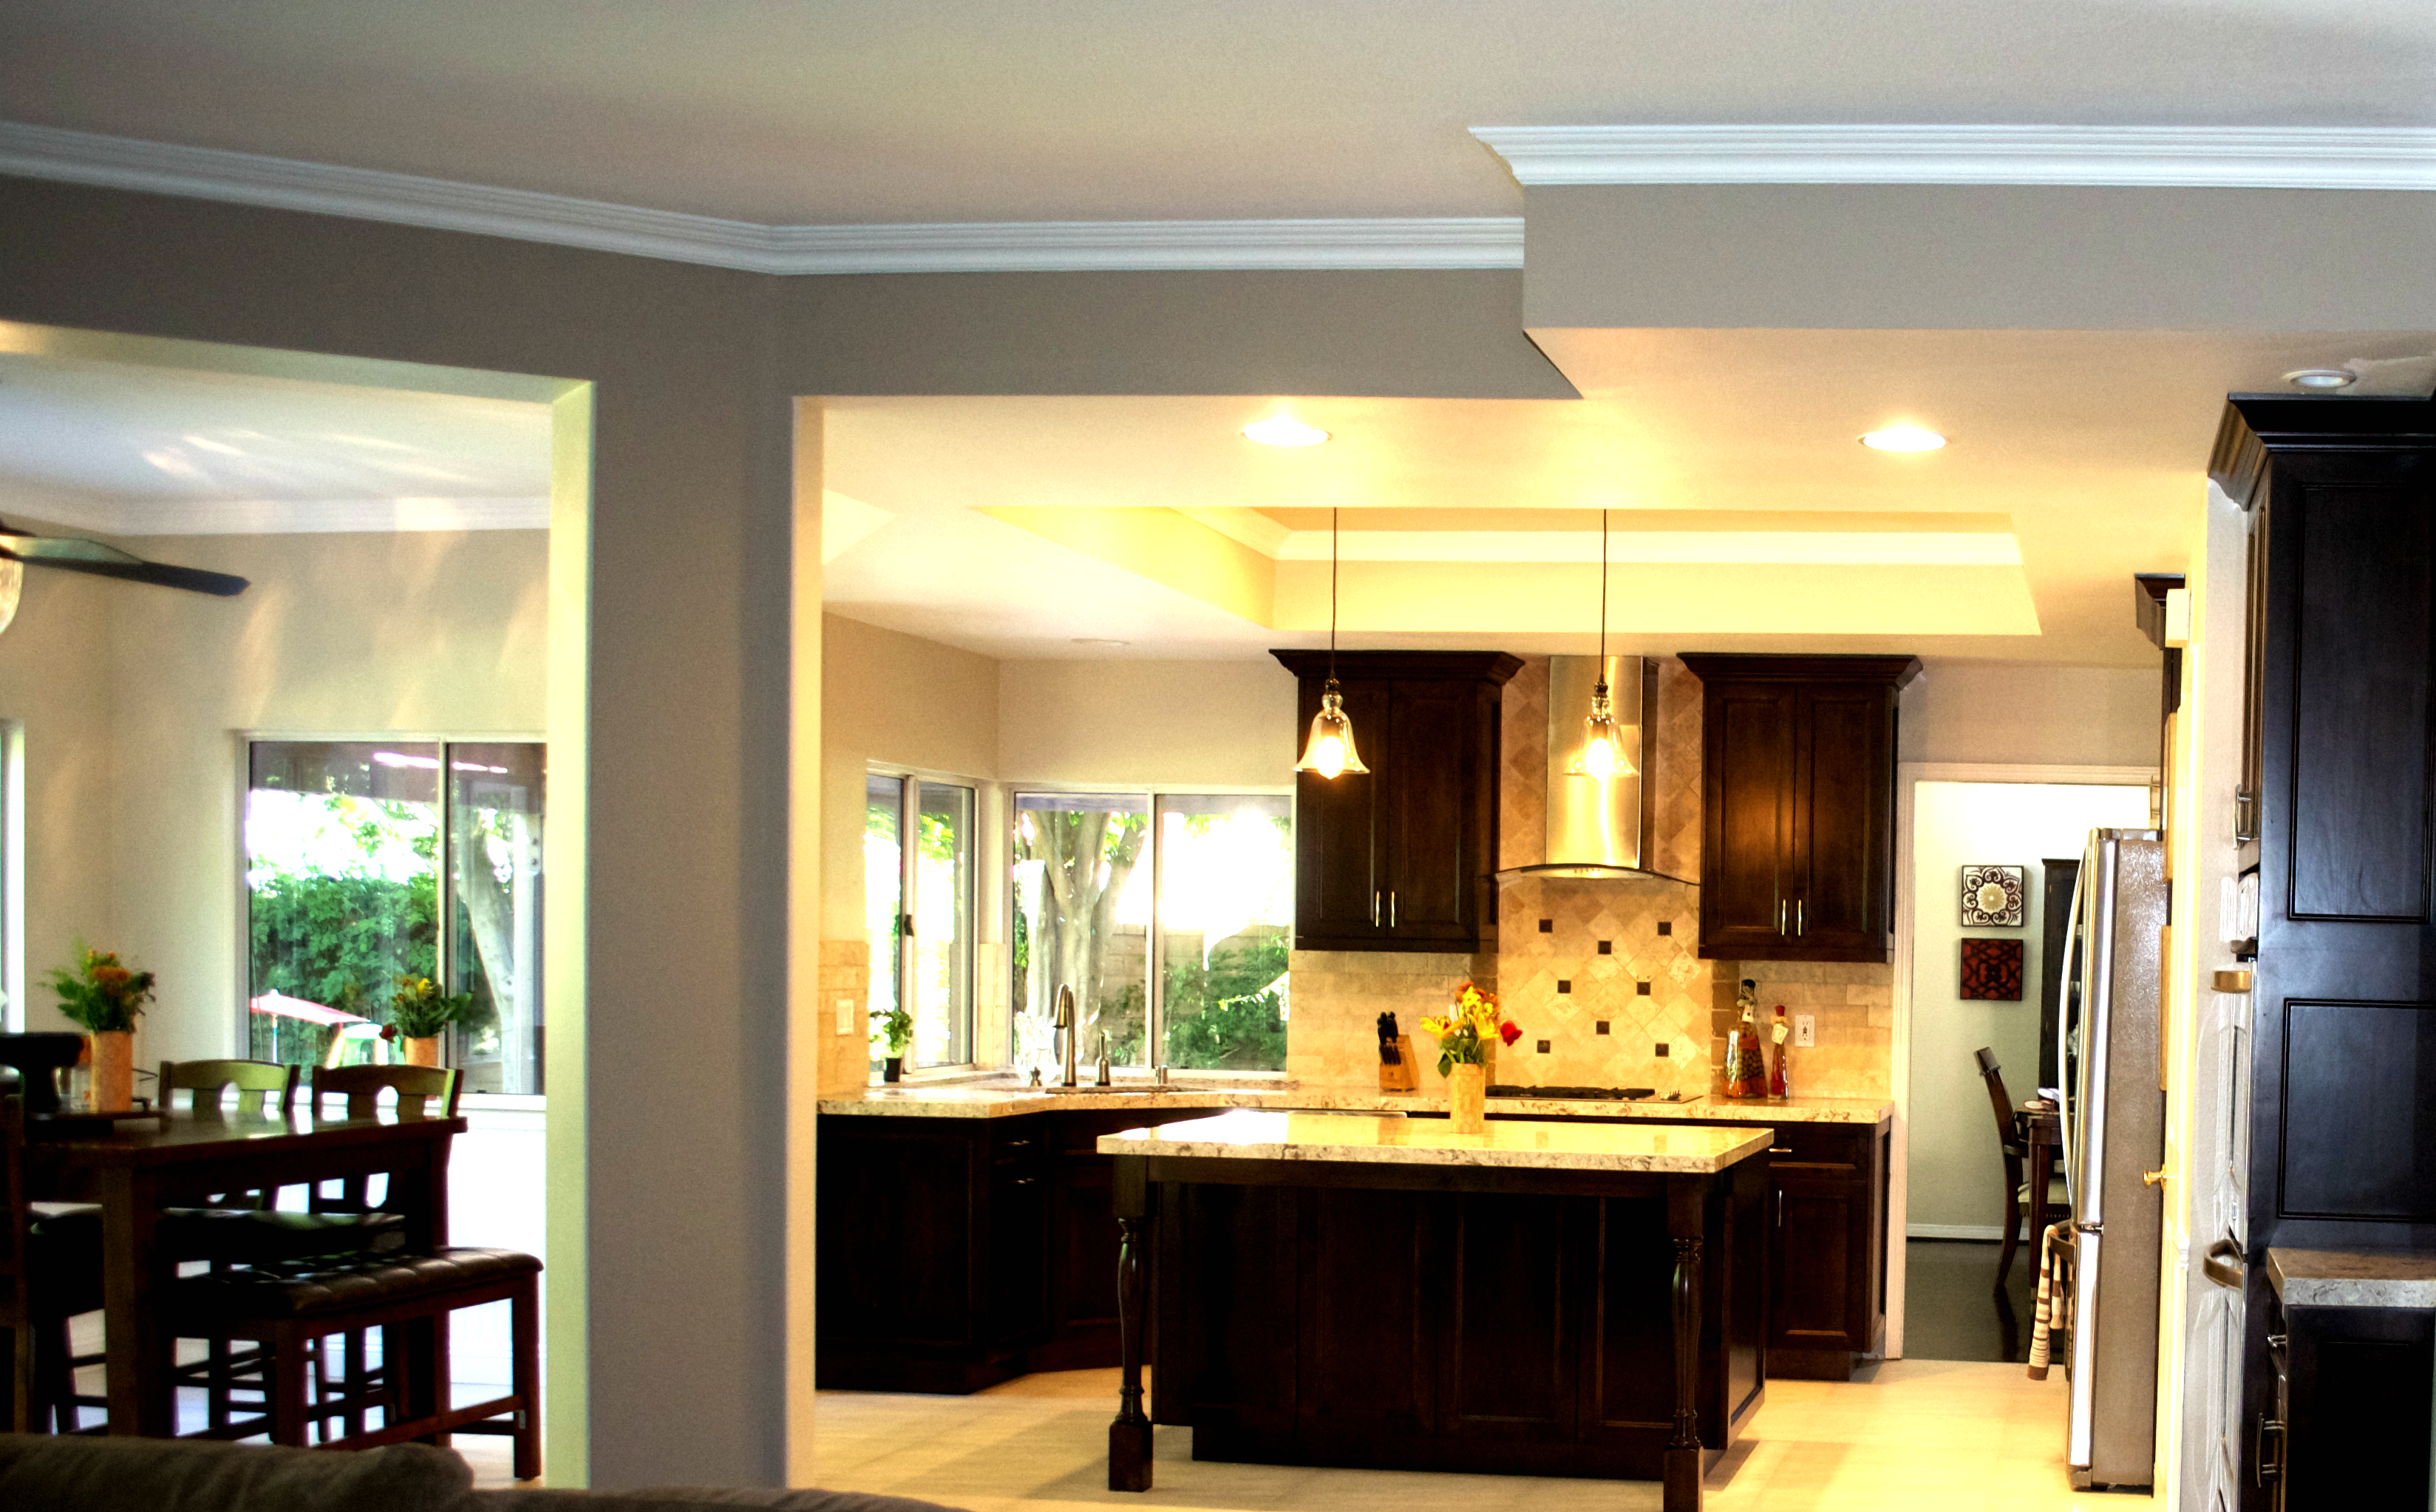 Yorba Linda - Kitchen Renovation